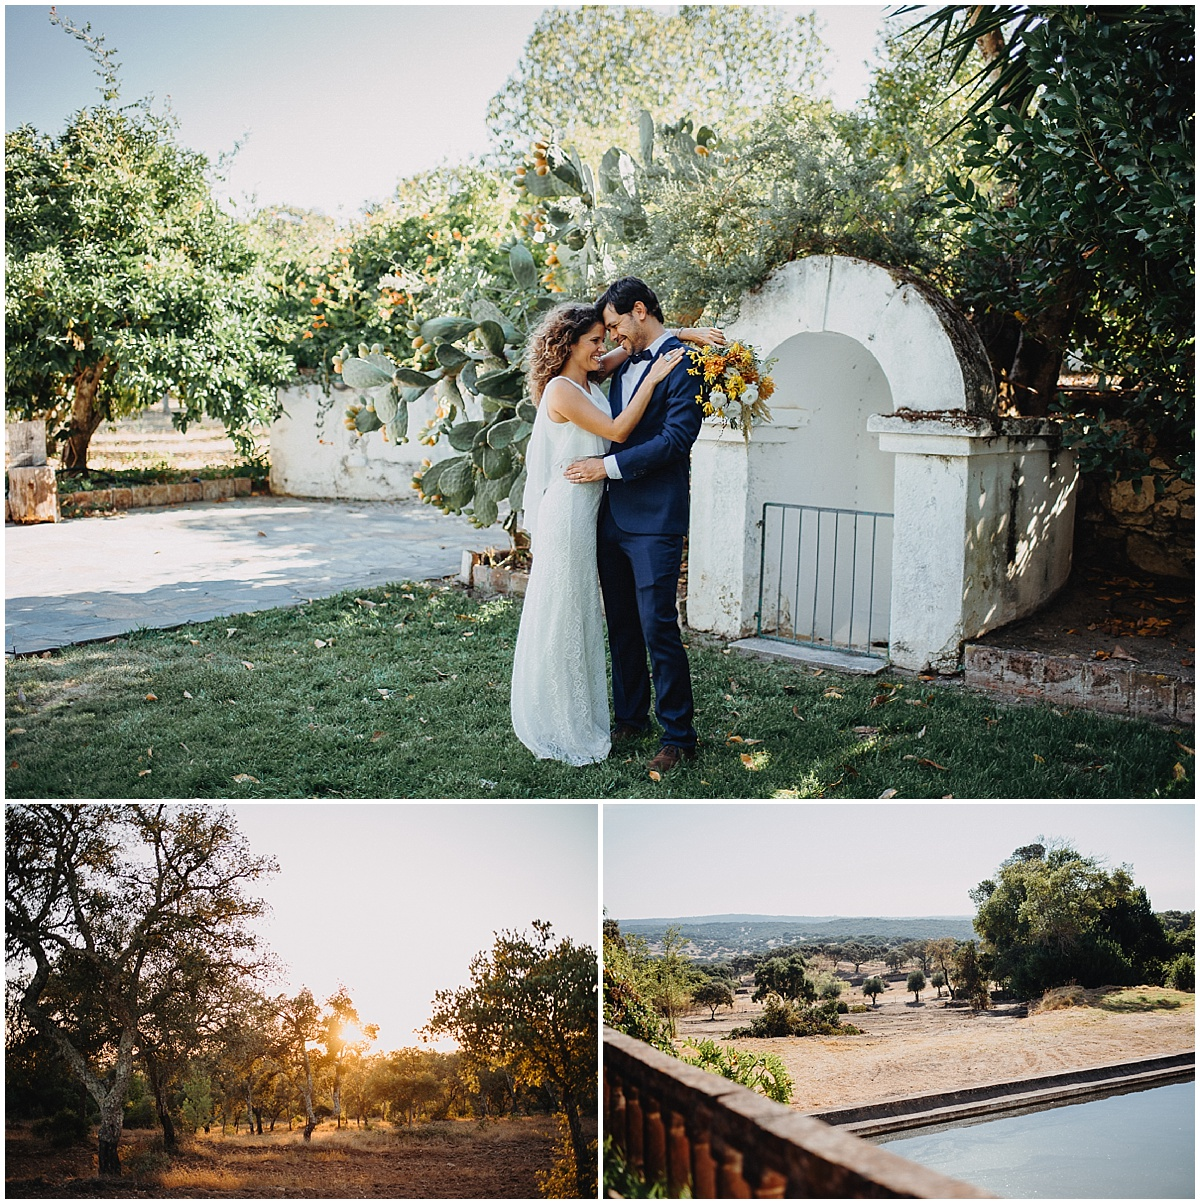 Hochzeit In Portugal Marrymag Destination Wedding Heiraten In Portugal